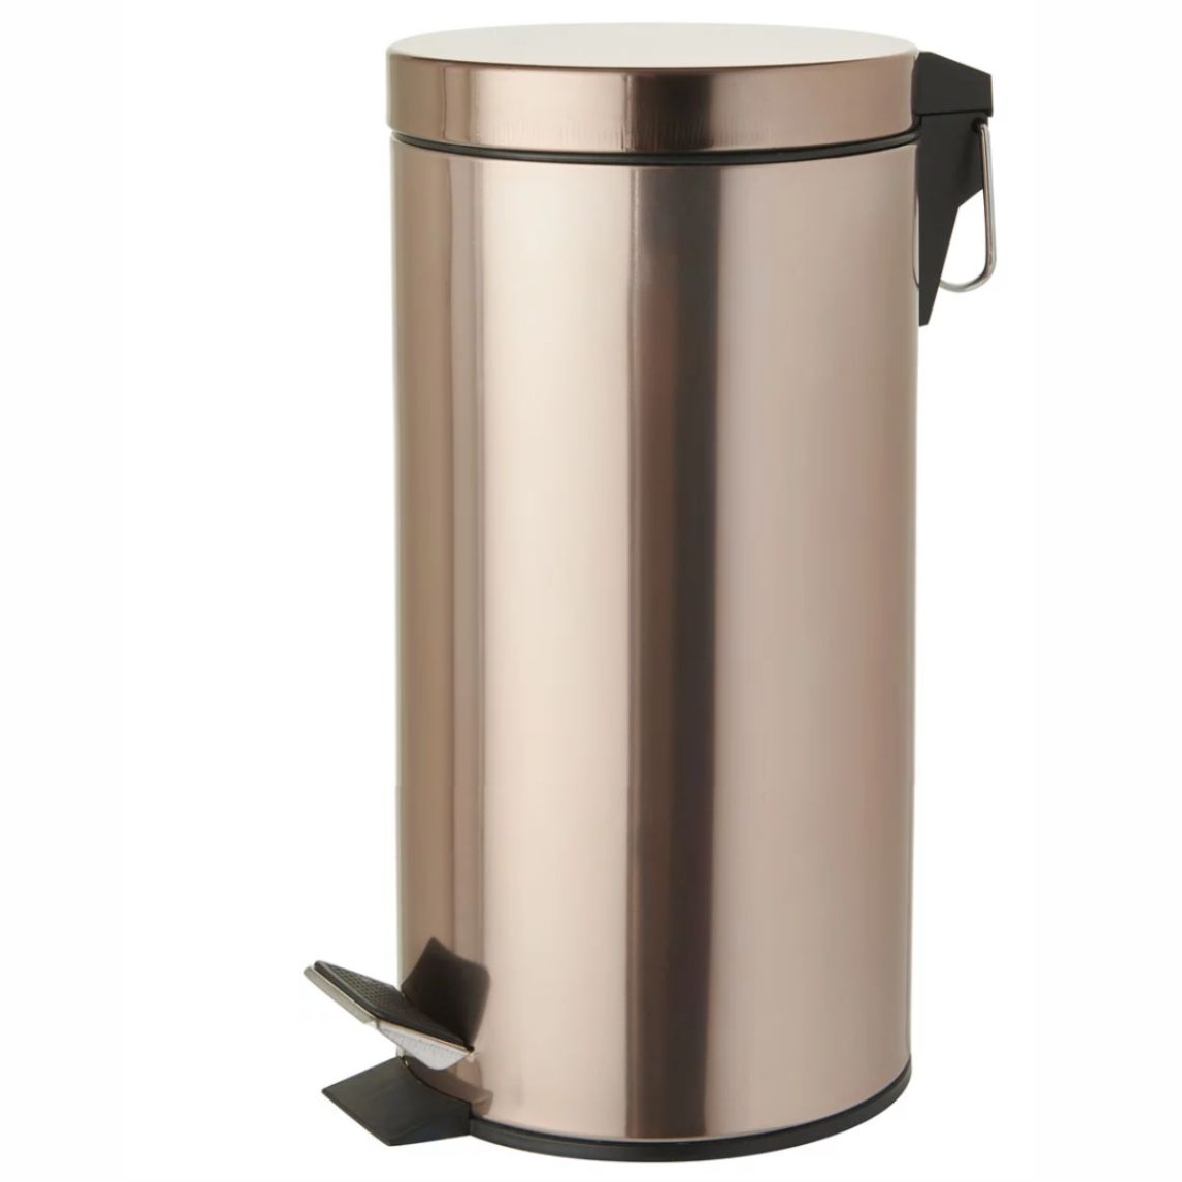 Stainless Steel Step Bin 30 Litre - Champagne Gold - product image